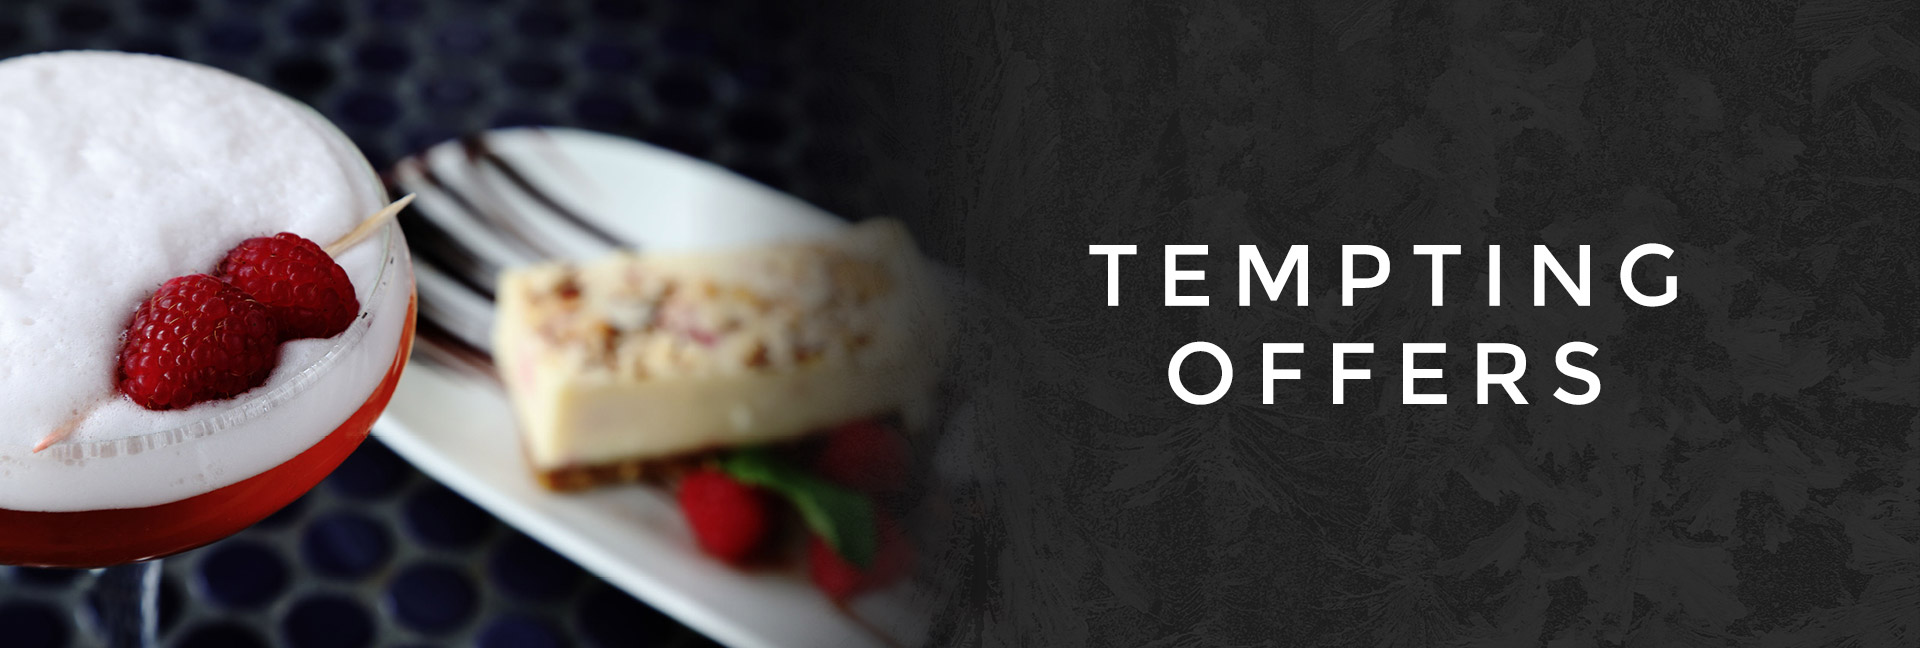 Temping offers at All Bar One Manchester